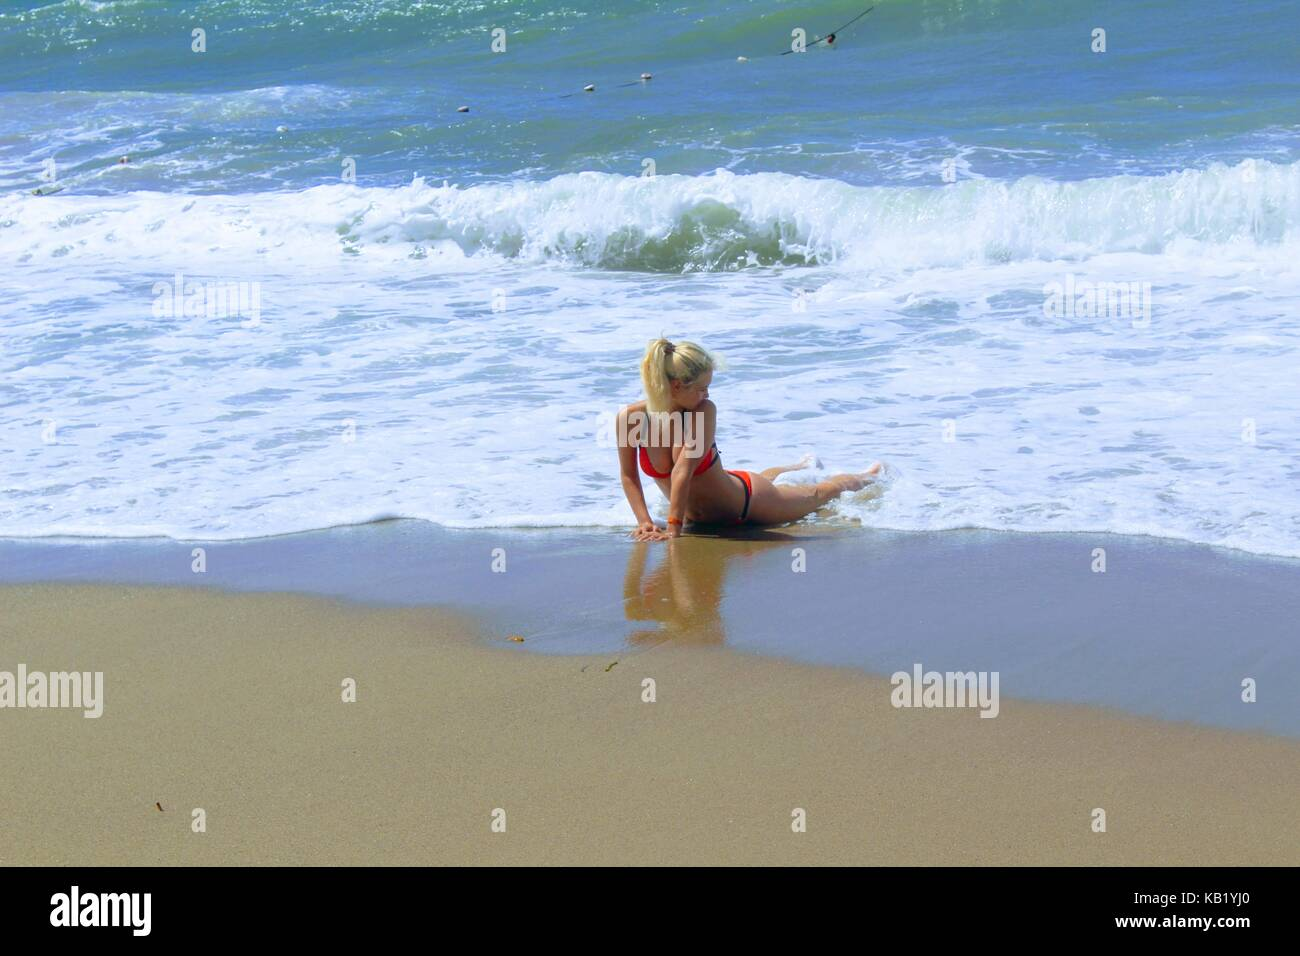 July, 2017 - A woman in a red swimsuit in the surf on the seashore at Cleopatra Beach (Alanya, Turkey). Stock Photo